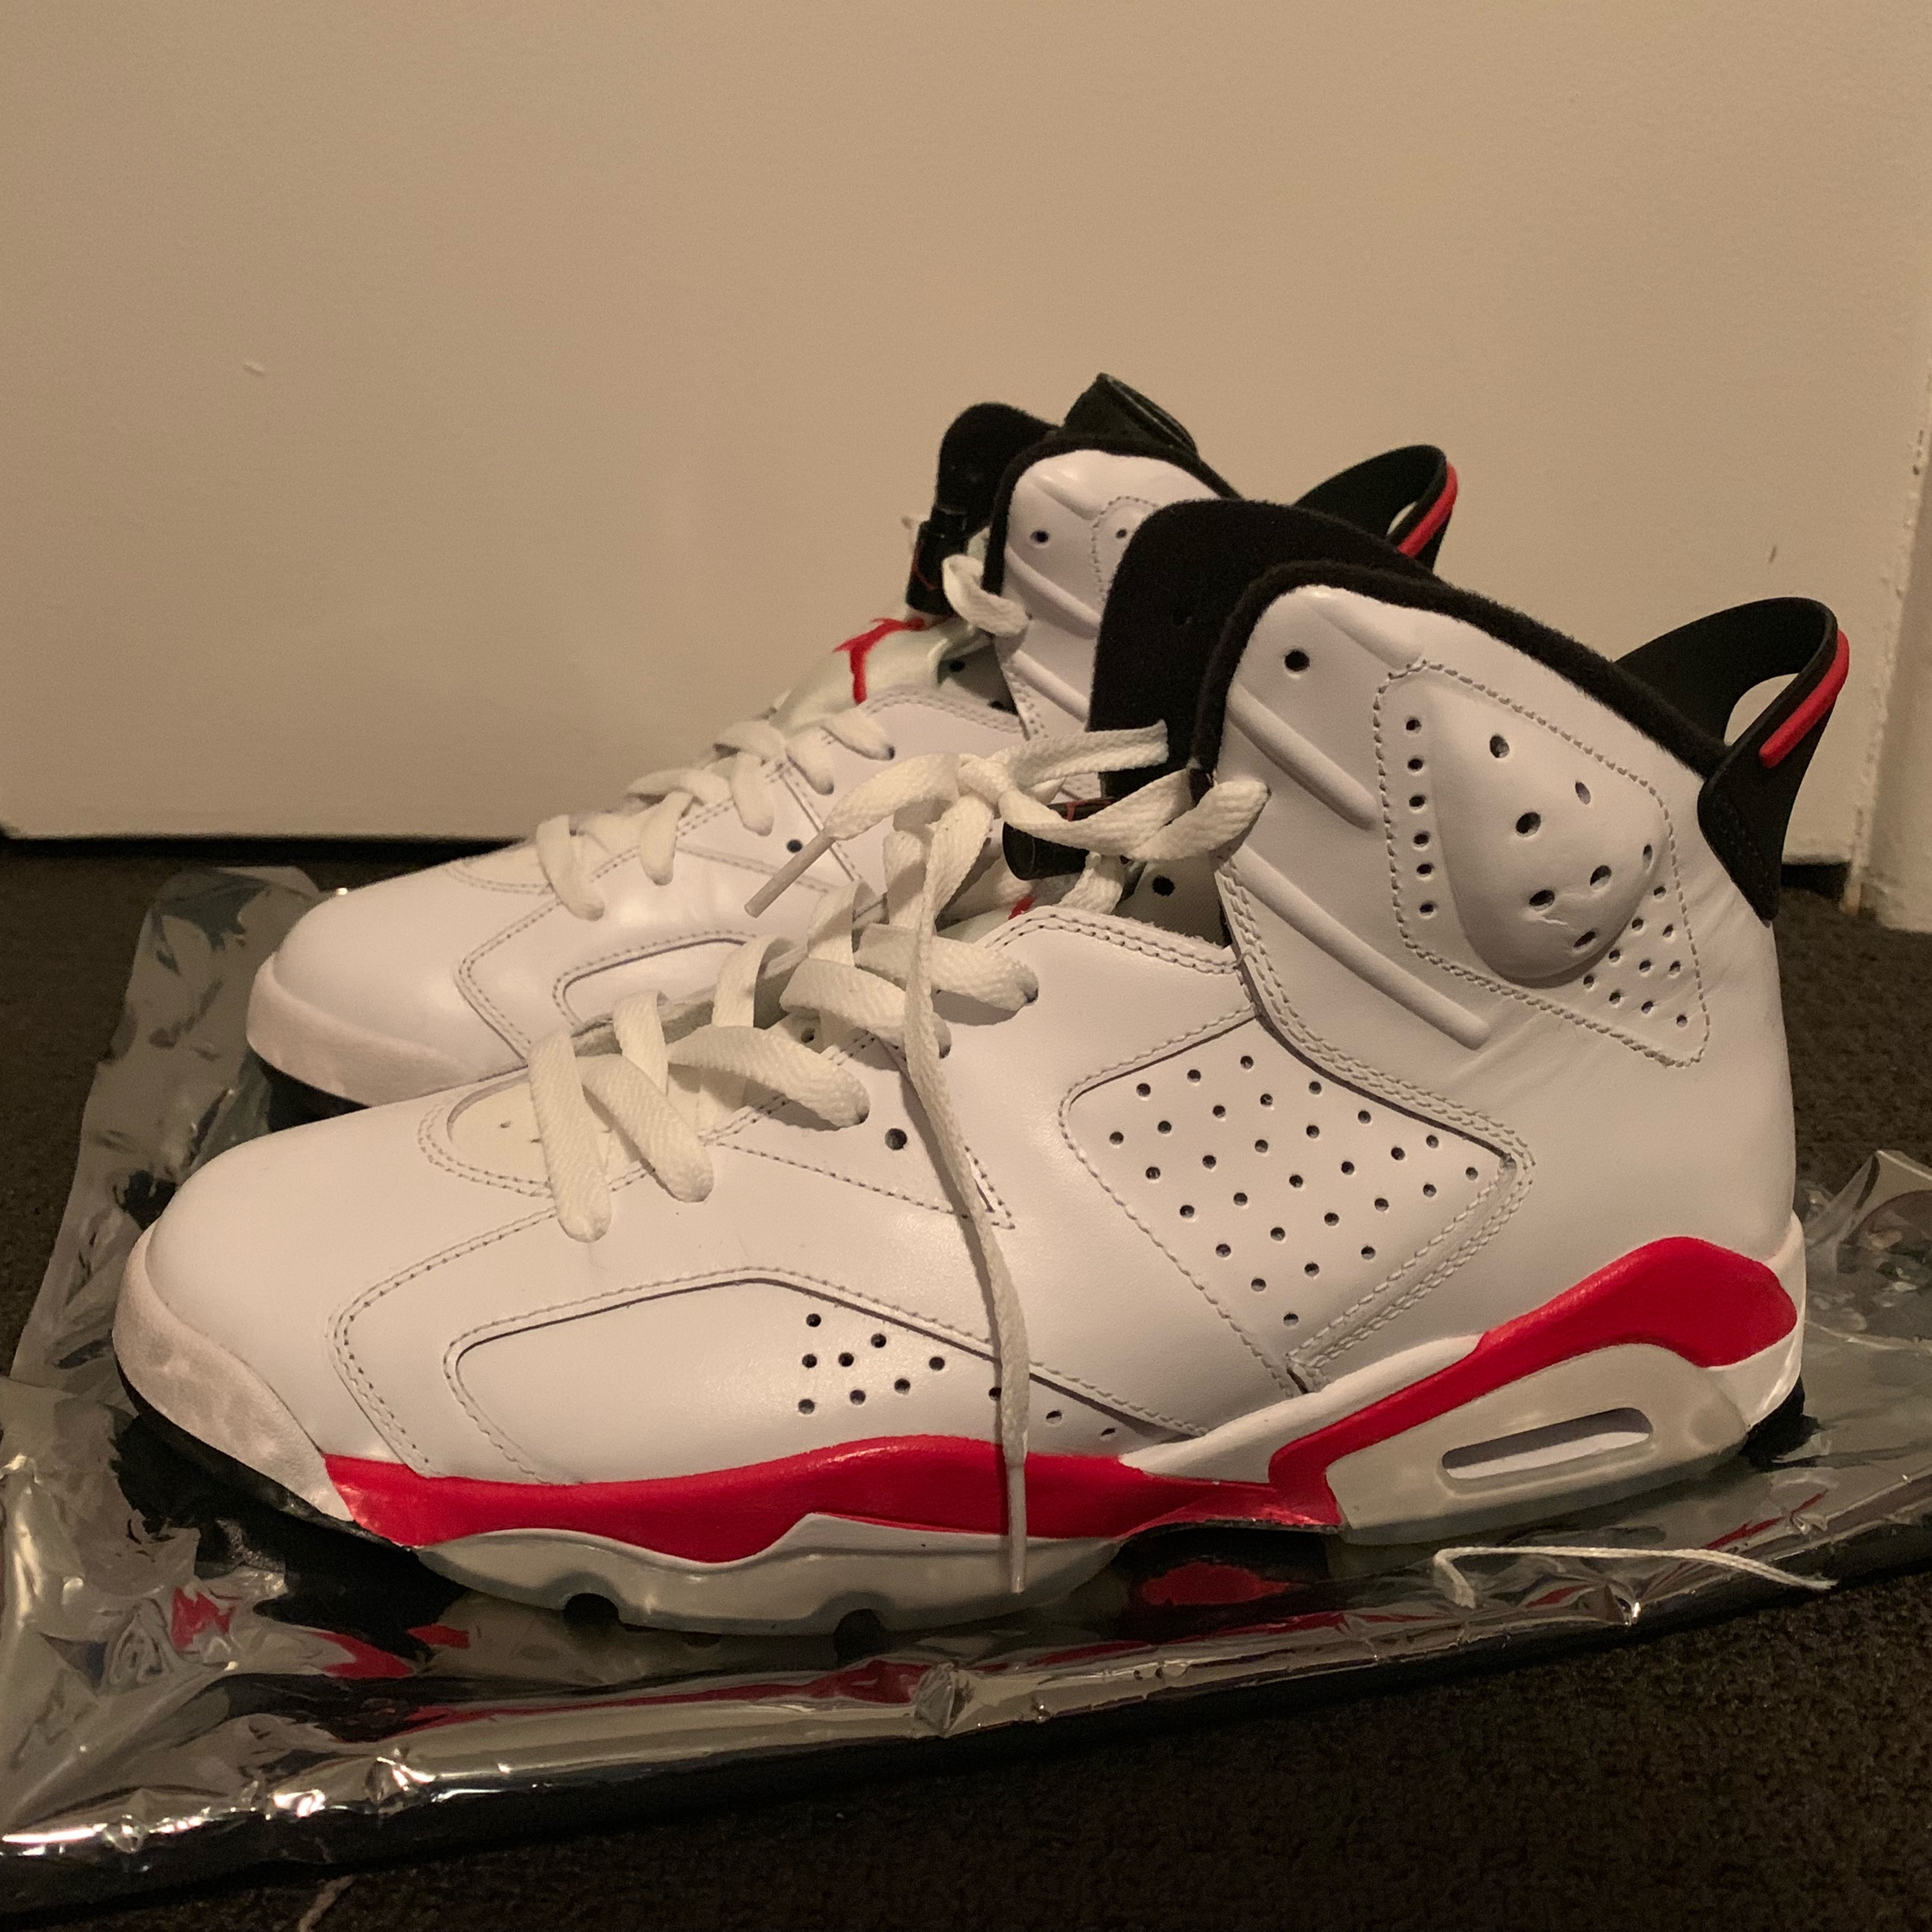 the best attitude 12db6 bae60 Air Jordan Vi(6) White Infrared 2010